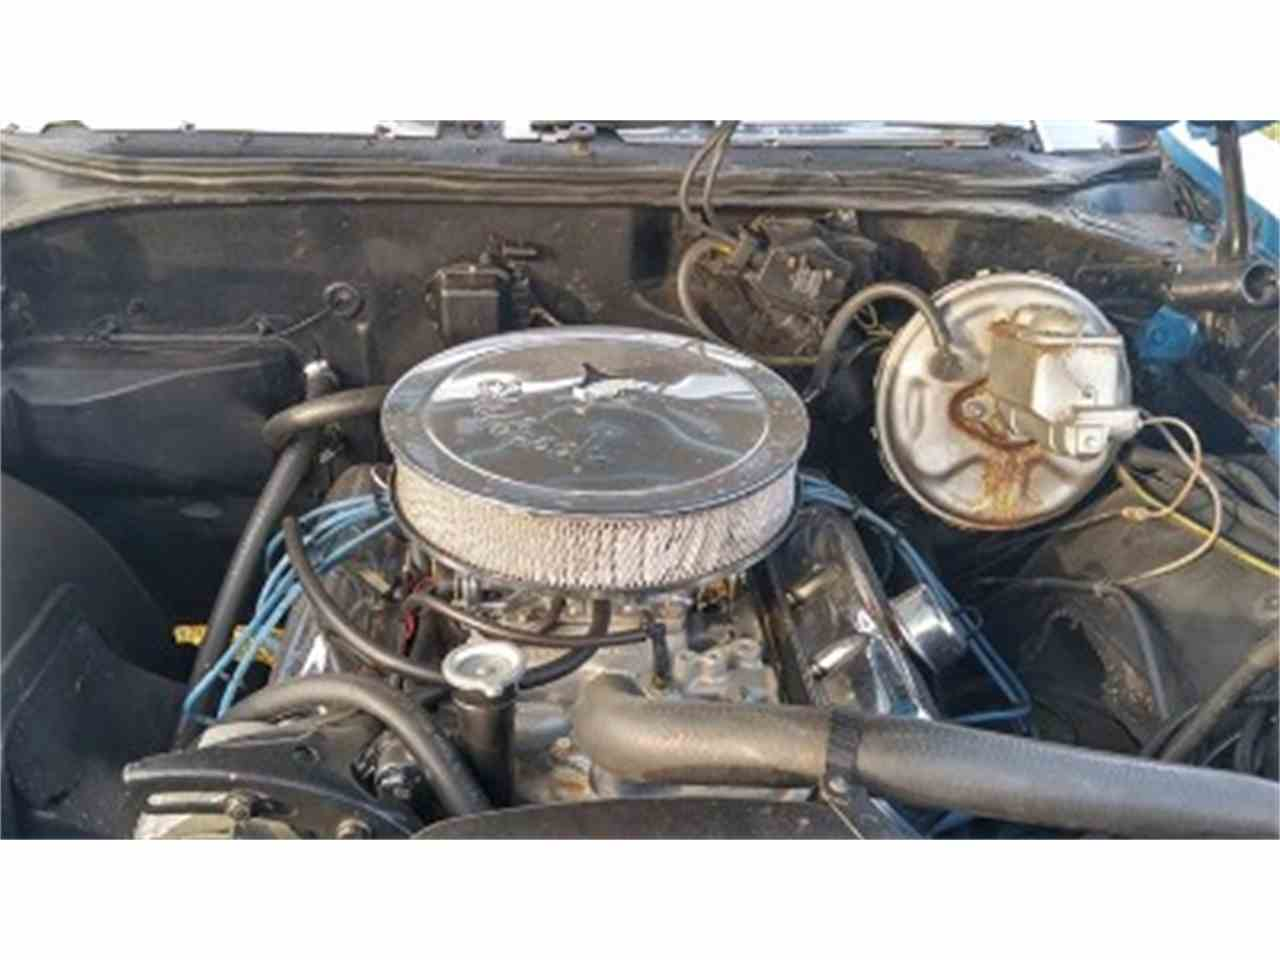 Large Picture of 1968 Oldsmobile Cutlass located in Palatine Illinois - $17,995.00 - LTK0